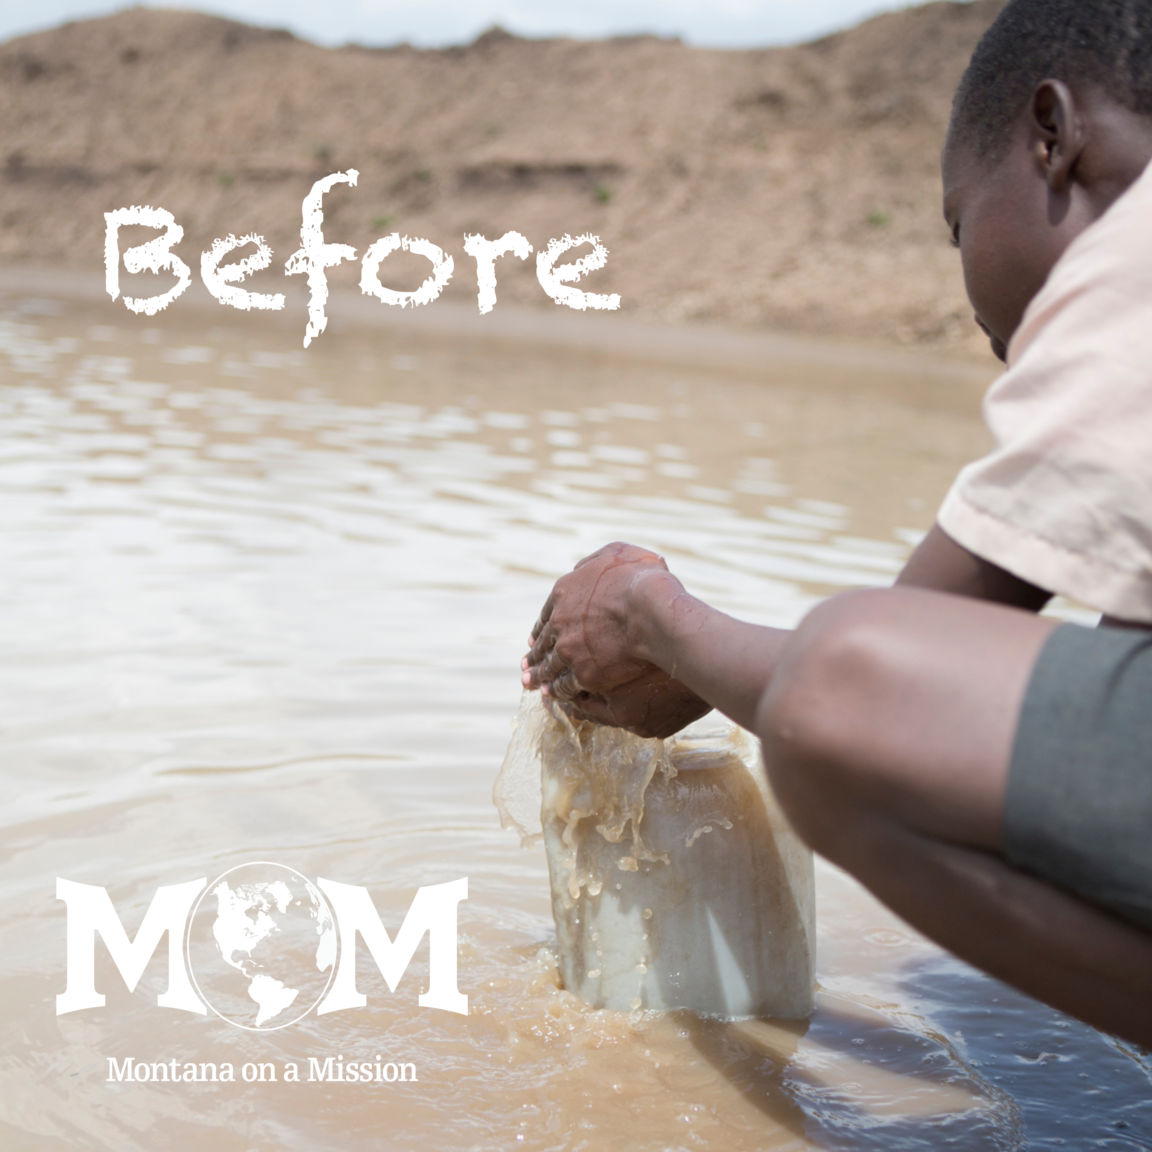 The students at Ilturisho primary had to walk to this 'dam' or reservoir to fetch water before the Montana on a Mission borehole and pipeline was installed in their community. The water comes from runoff and is unbelievably dirty and contaminated.